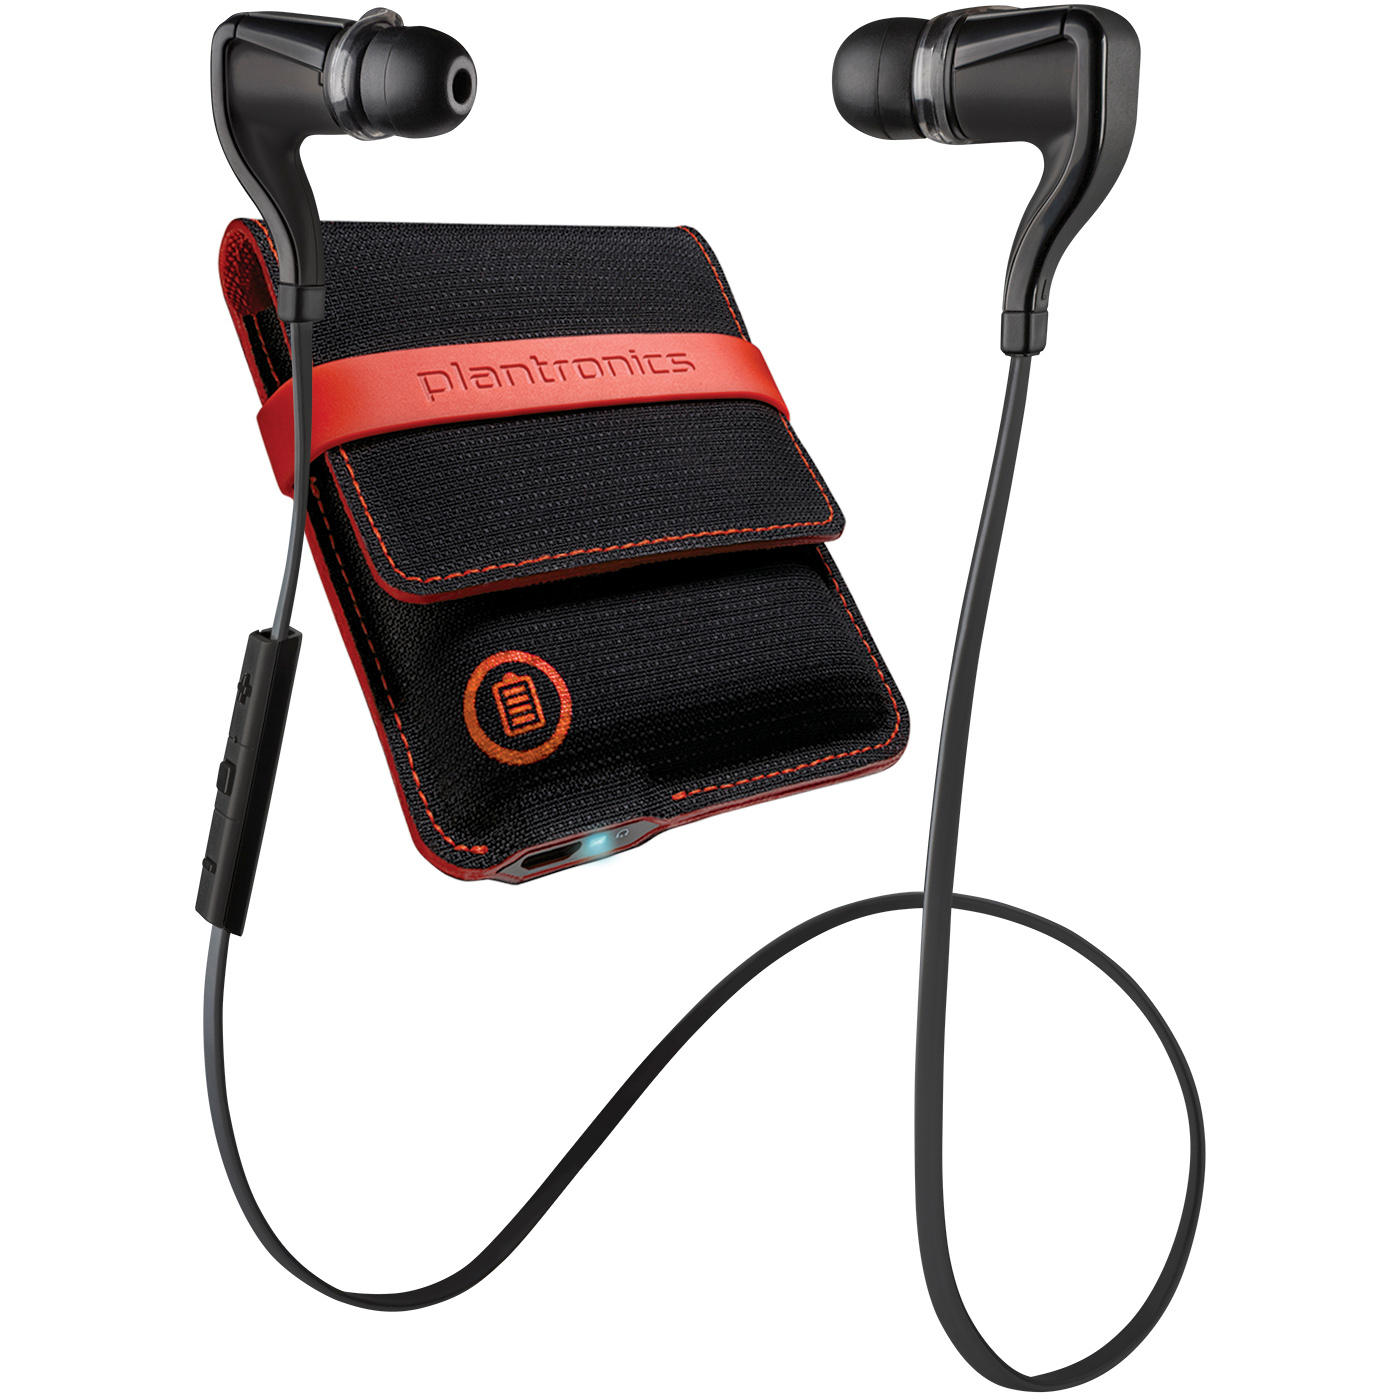 Refurbished Plantronics BackBeat Go 2 Bluetooth Wireless Earbud Headphones w/ Charging Case